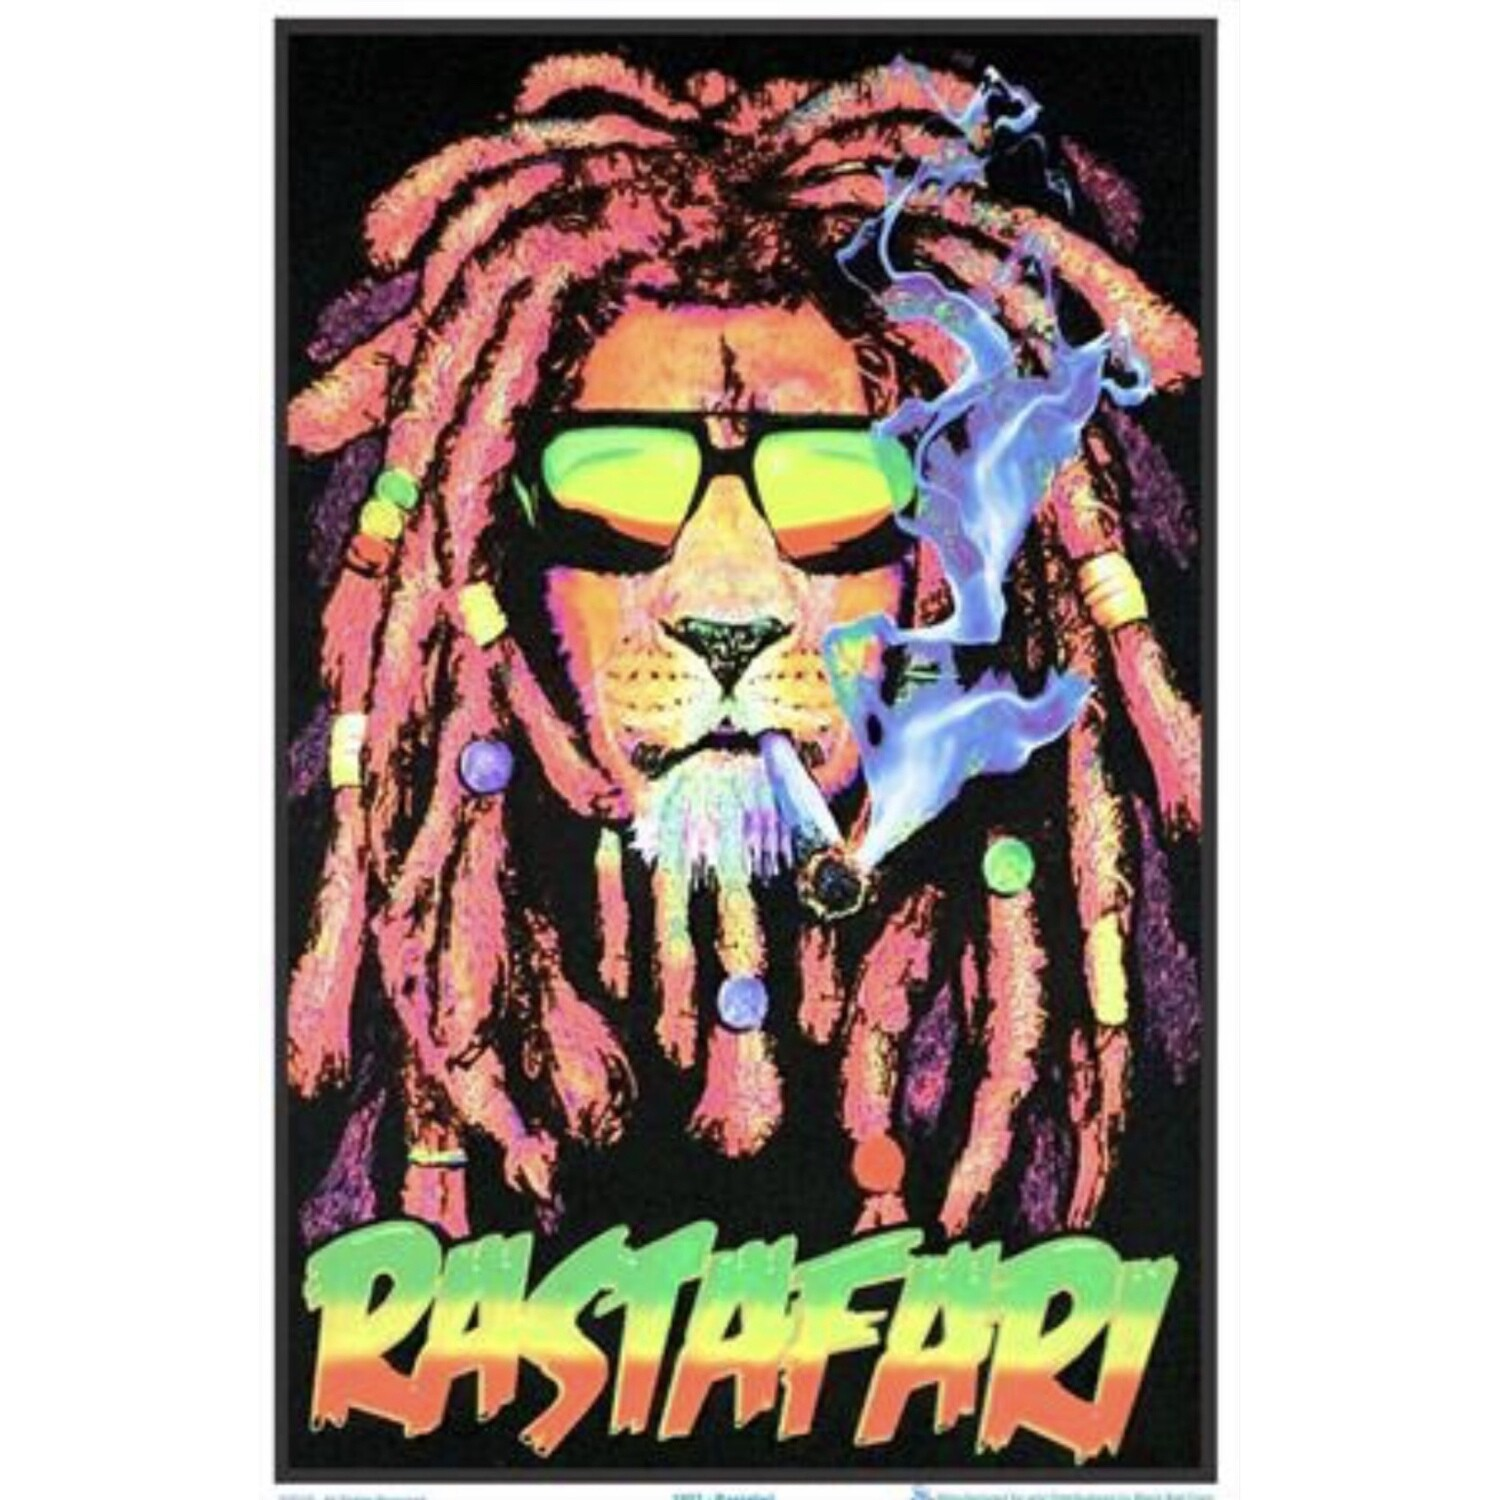 RASTAFARI BLACKLIGHT POSTER